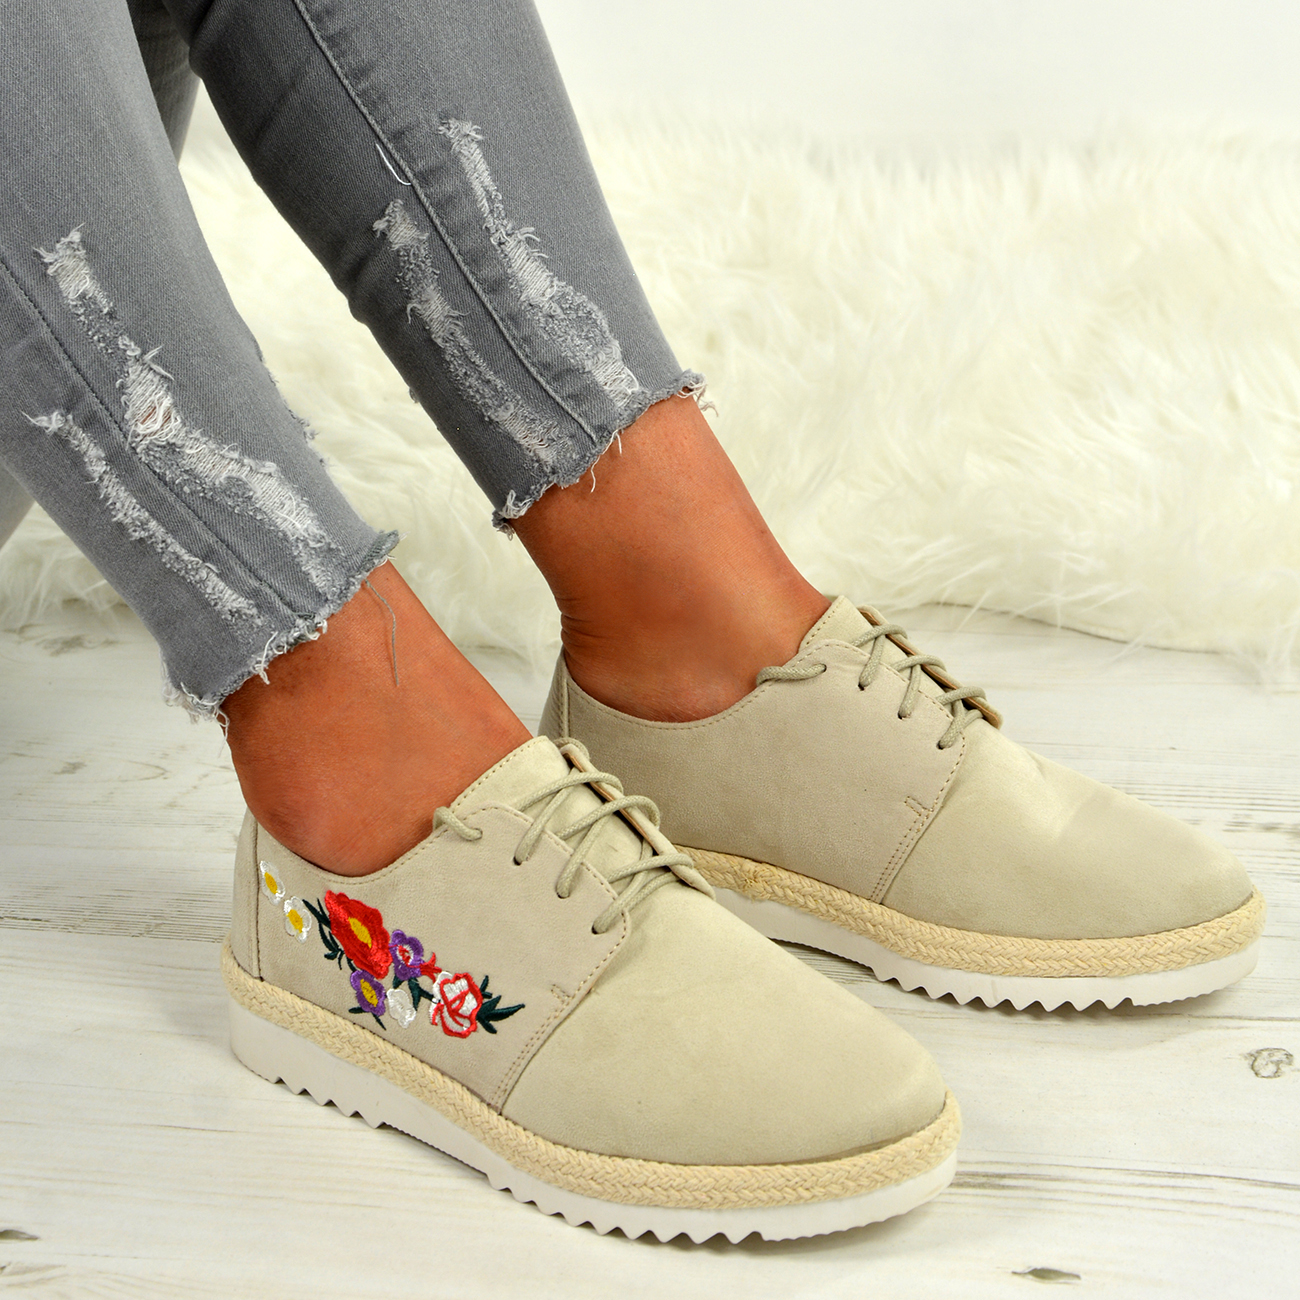 LADIES-WOMENS-FLORAL-LACE-UP-TRAINERS-PLIMSOLL-PUMPS-CASUAL-SHOES-SIZE-UK thumbnail 10